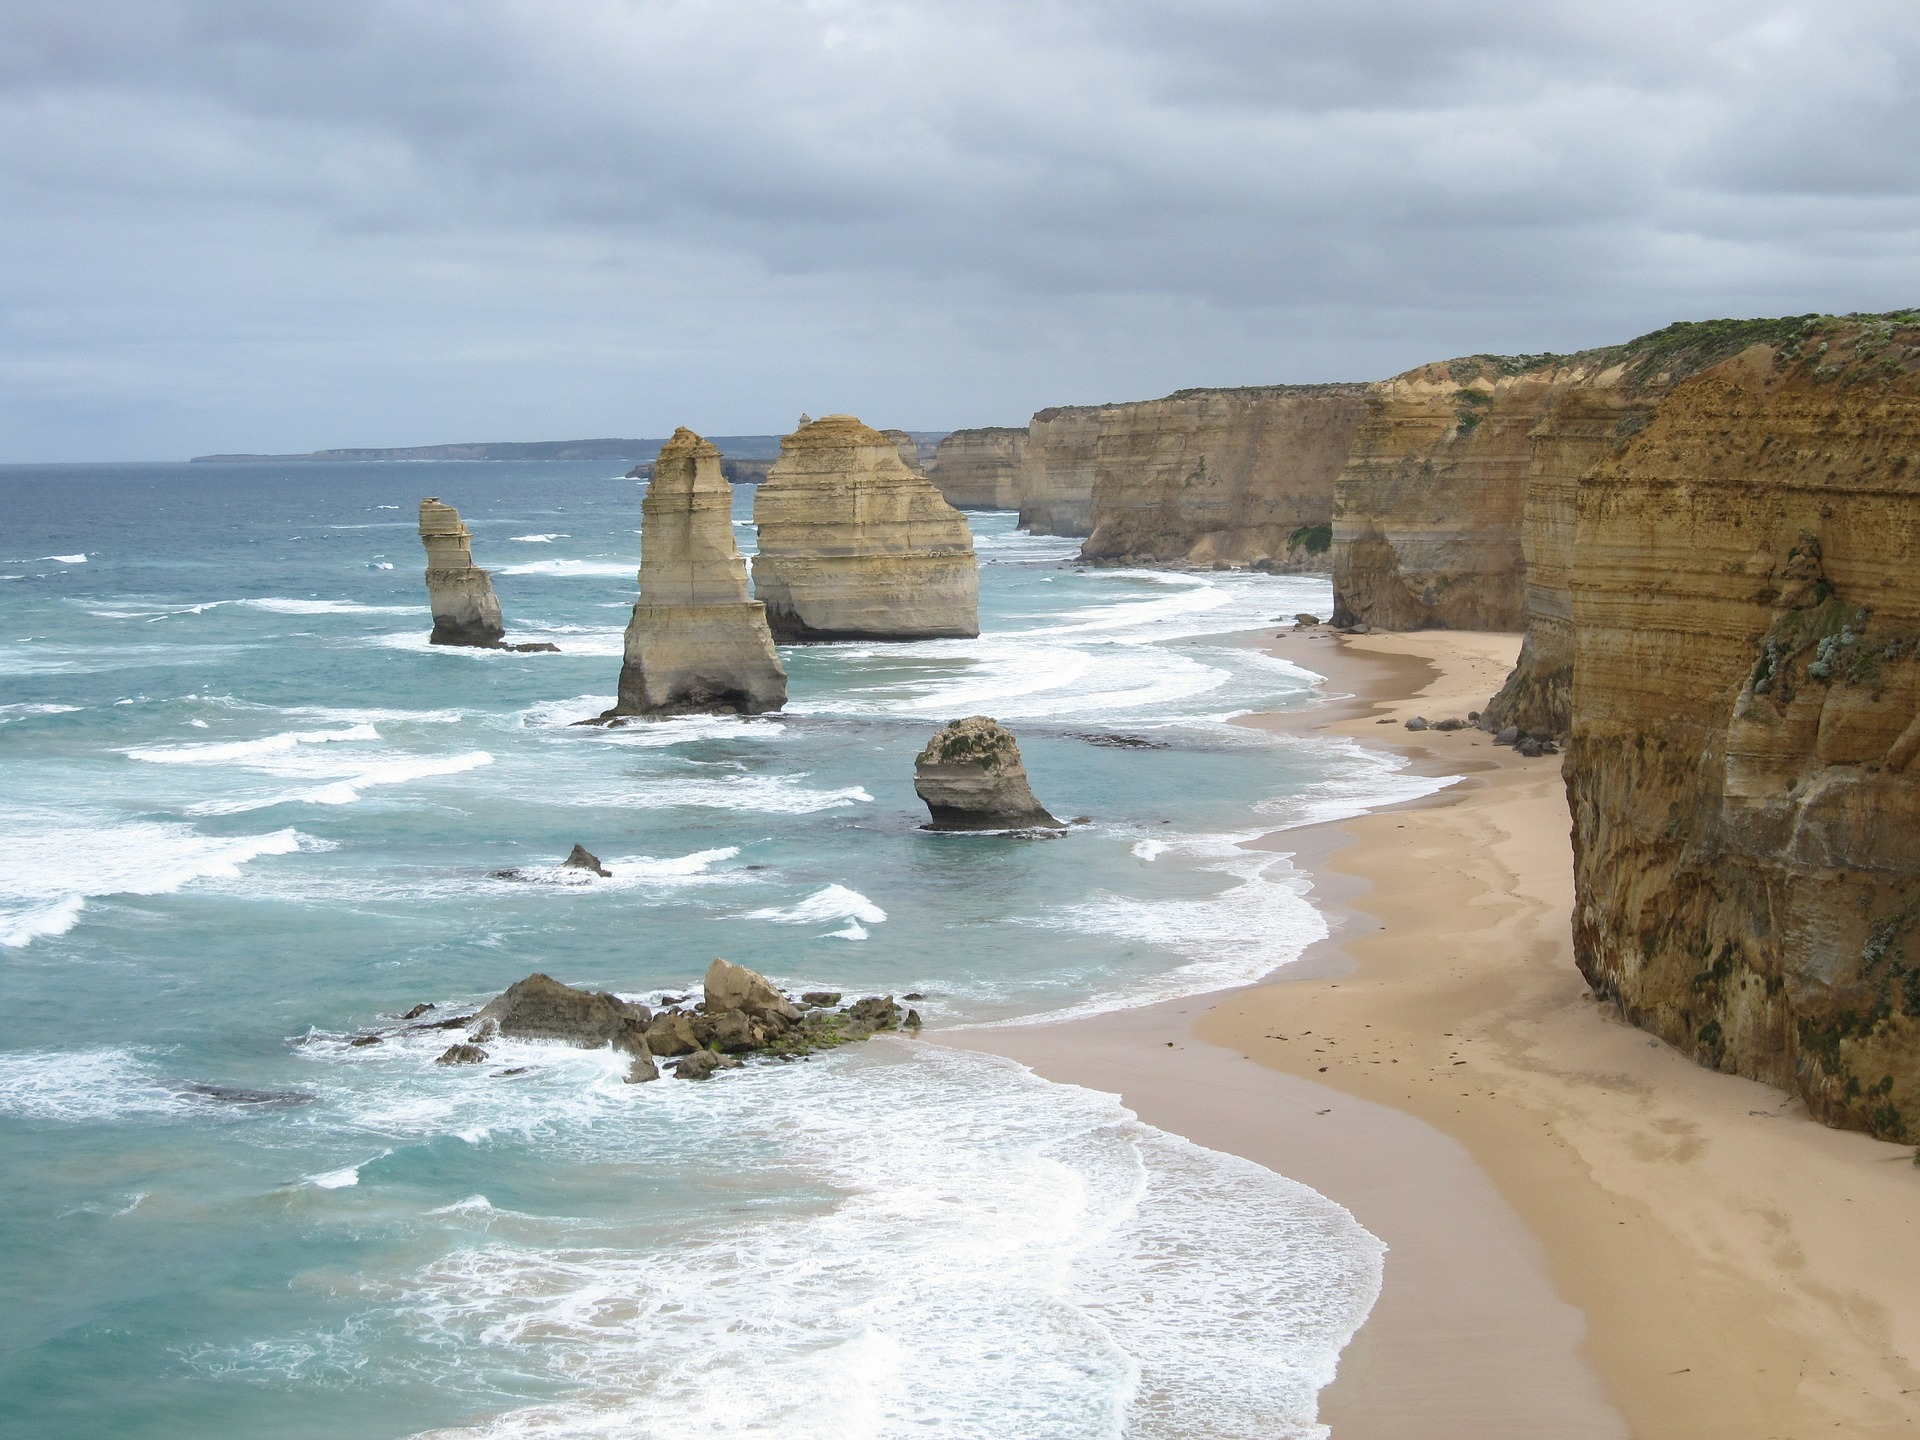 A view of the Great Ocean Road.